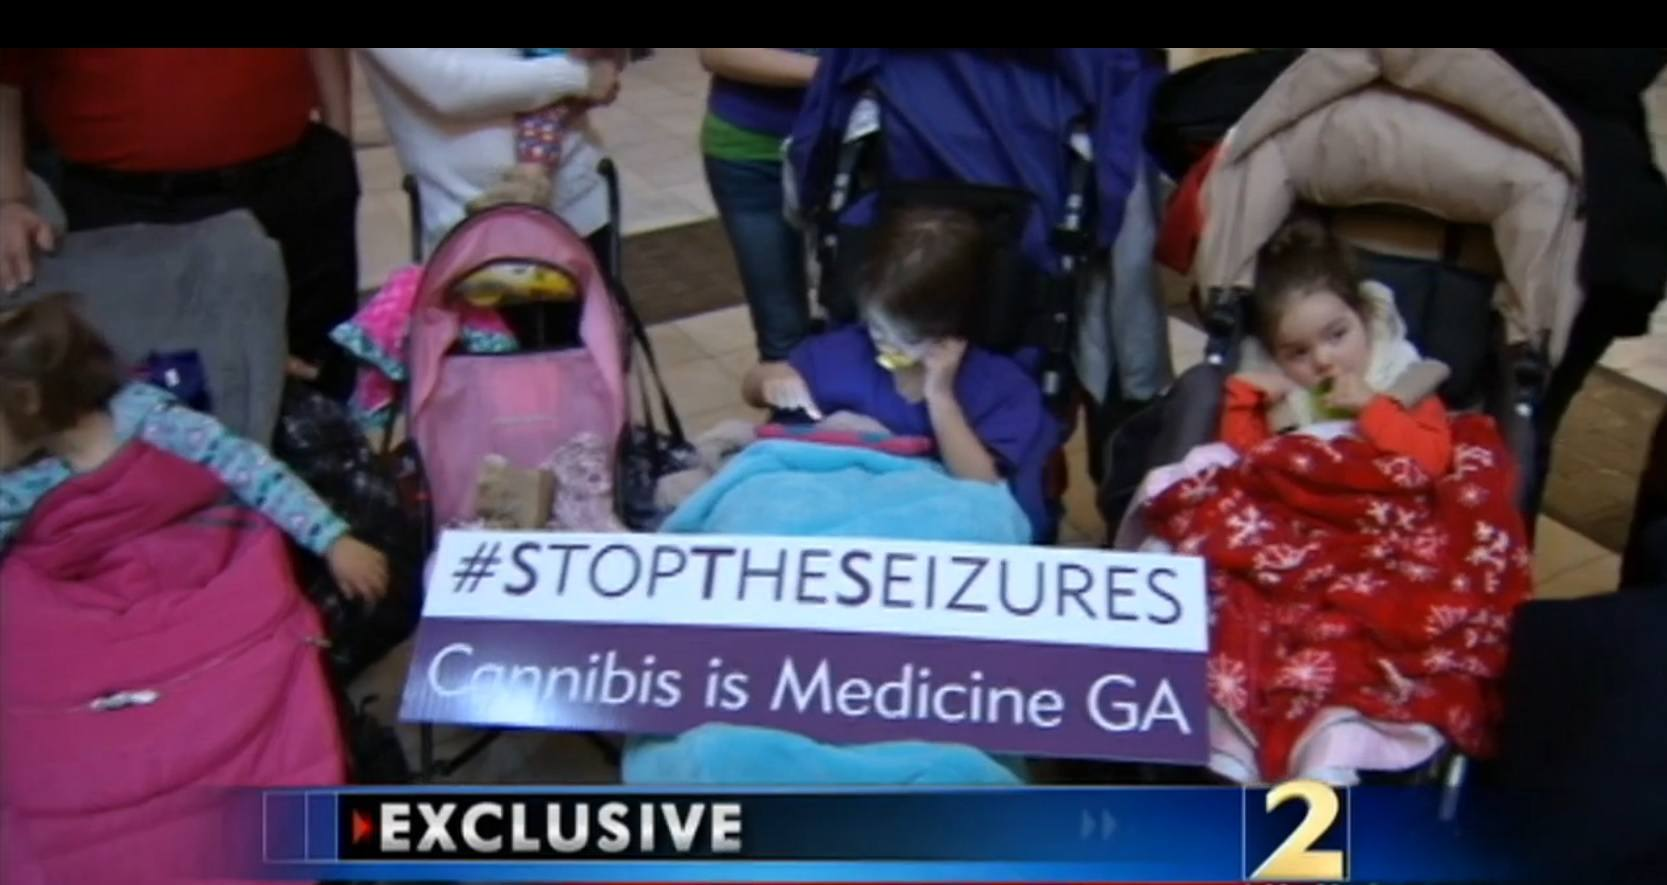 Image of sick kids in Georgia that will be able to legally get medical cannabis when cards are issued